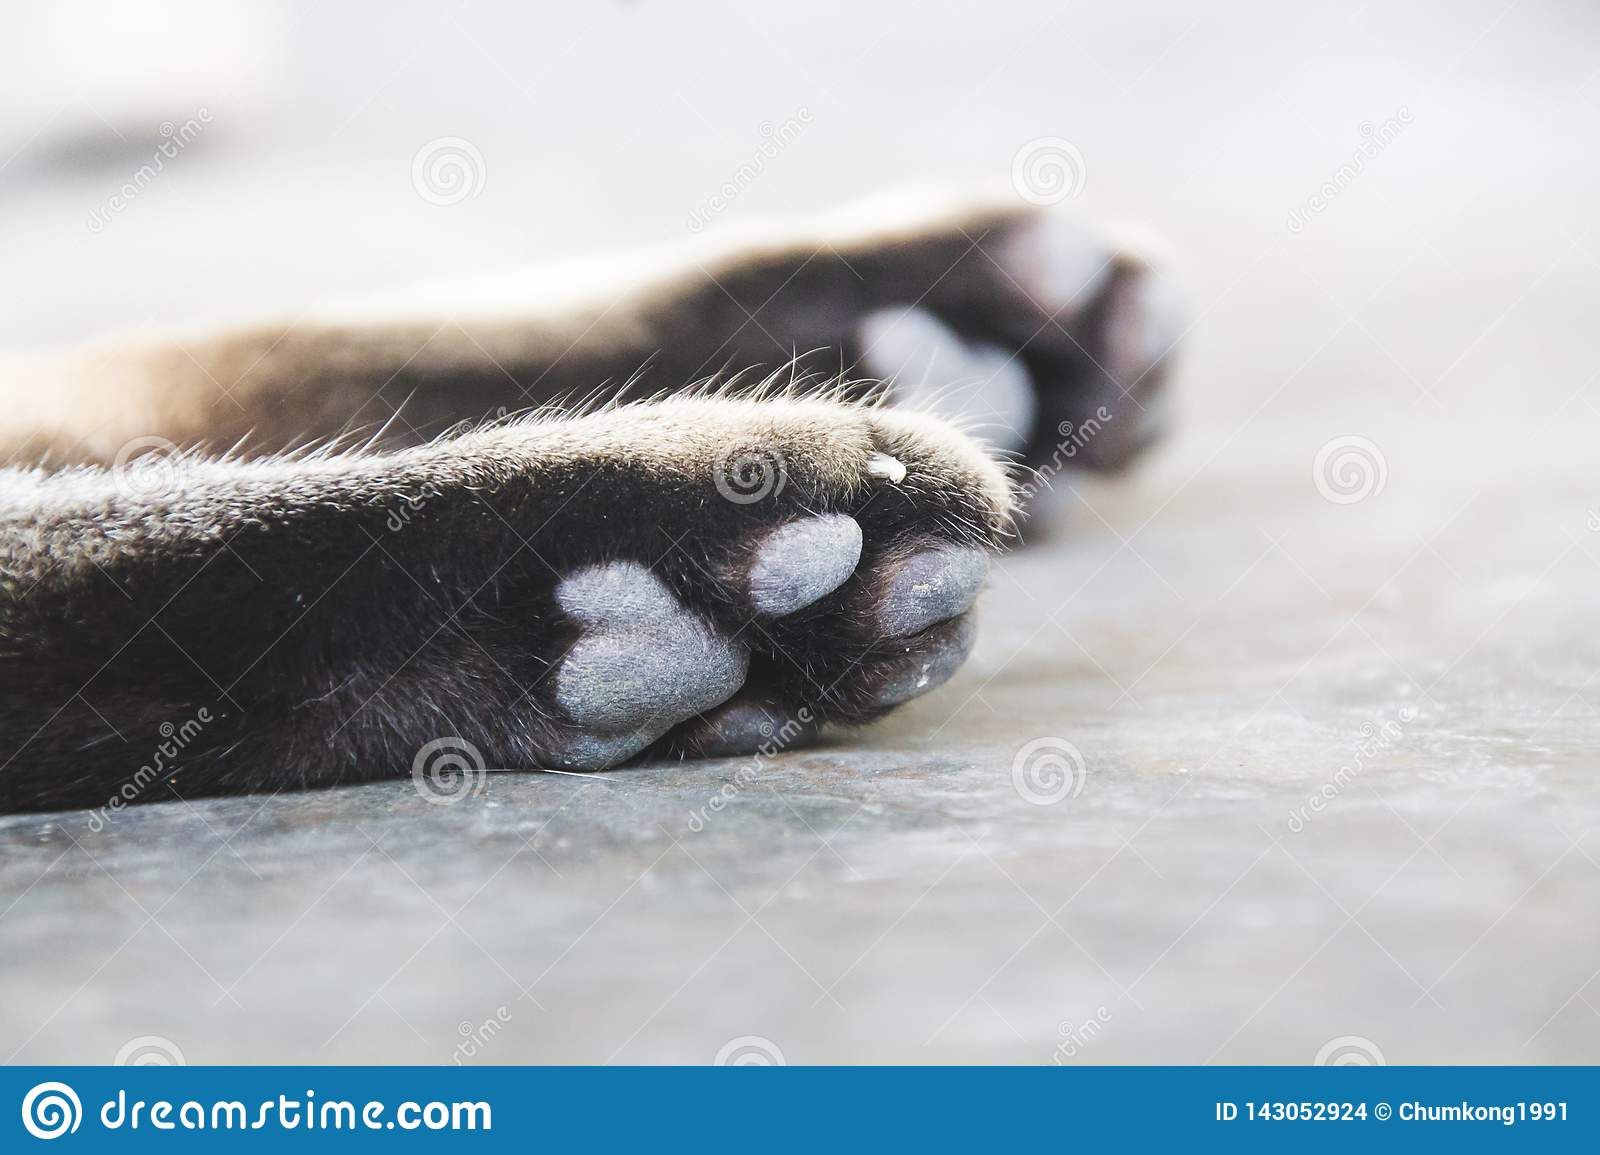 Cat is paws.